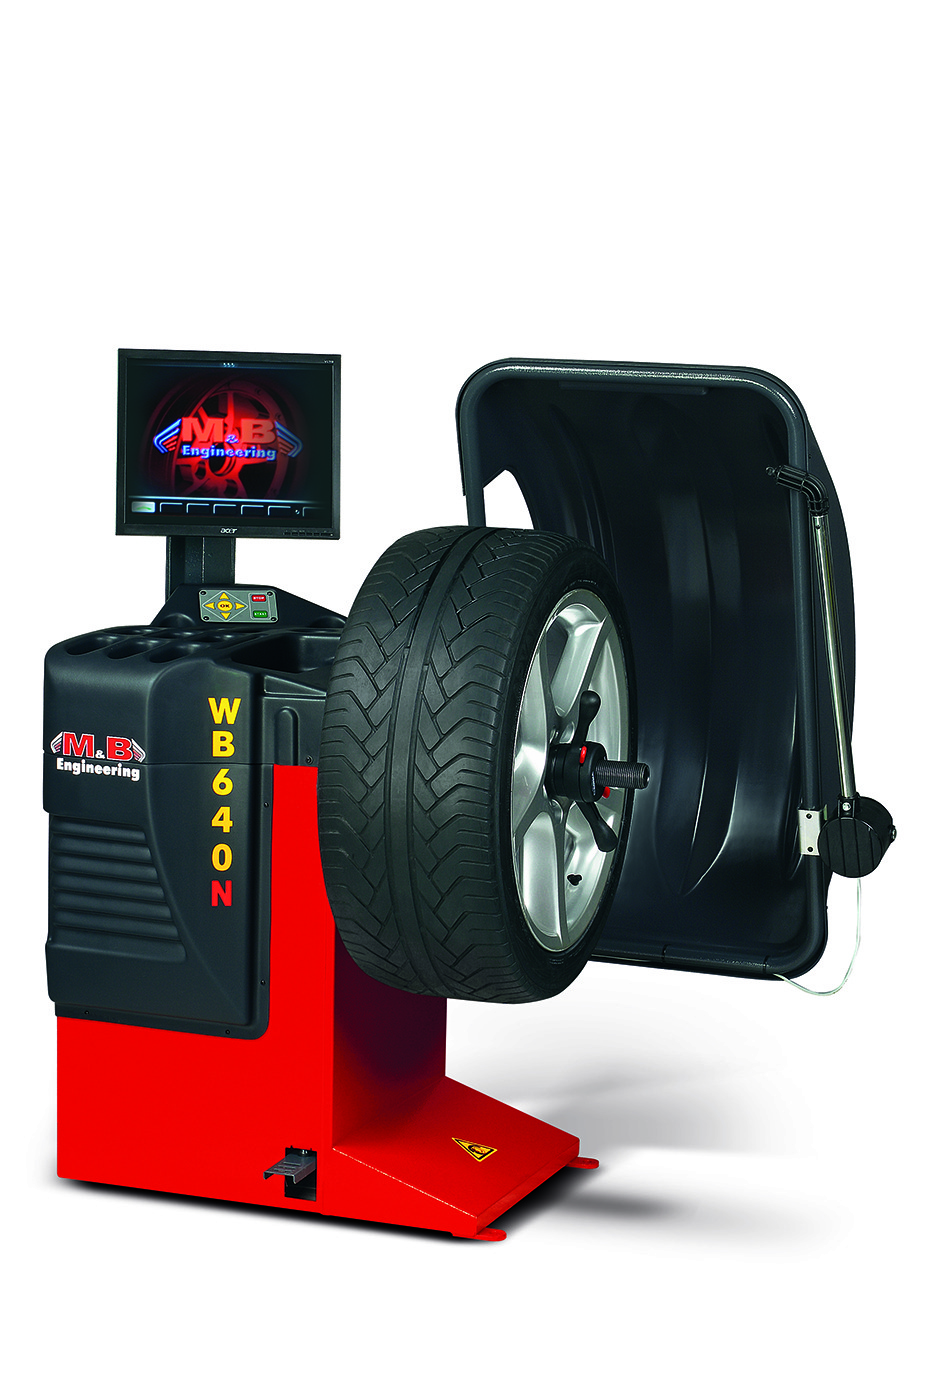 M&b 640n Video Wheel Balancer